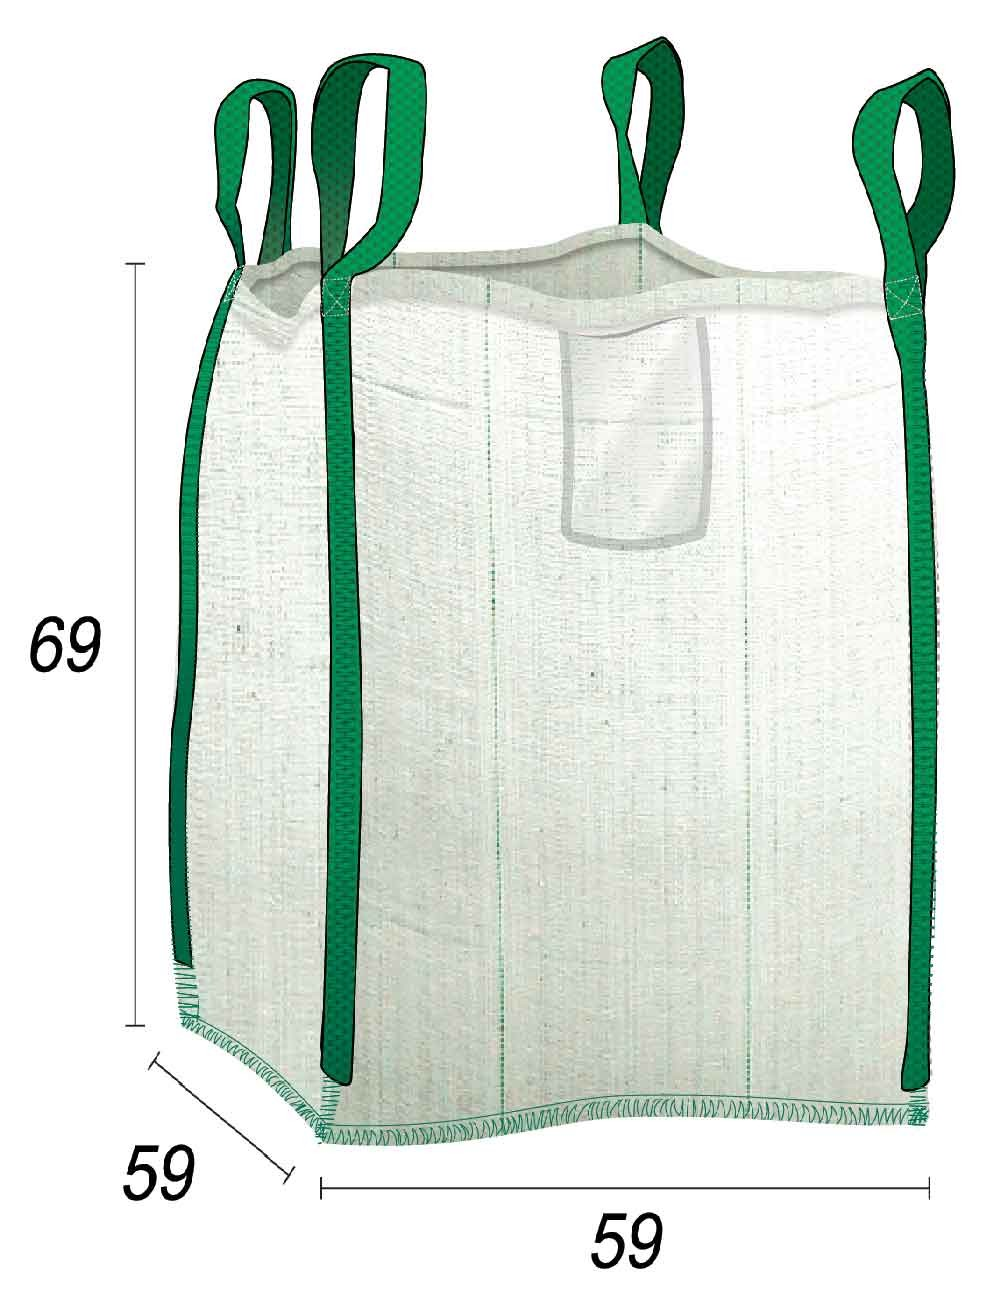 Mini Big Bag Rifiuti domestici e fai da te - 55X55X65